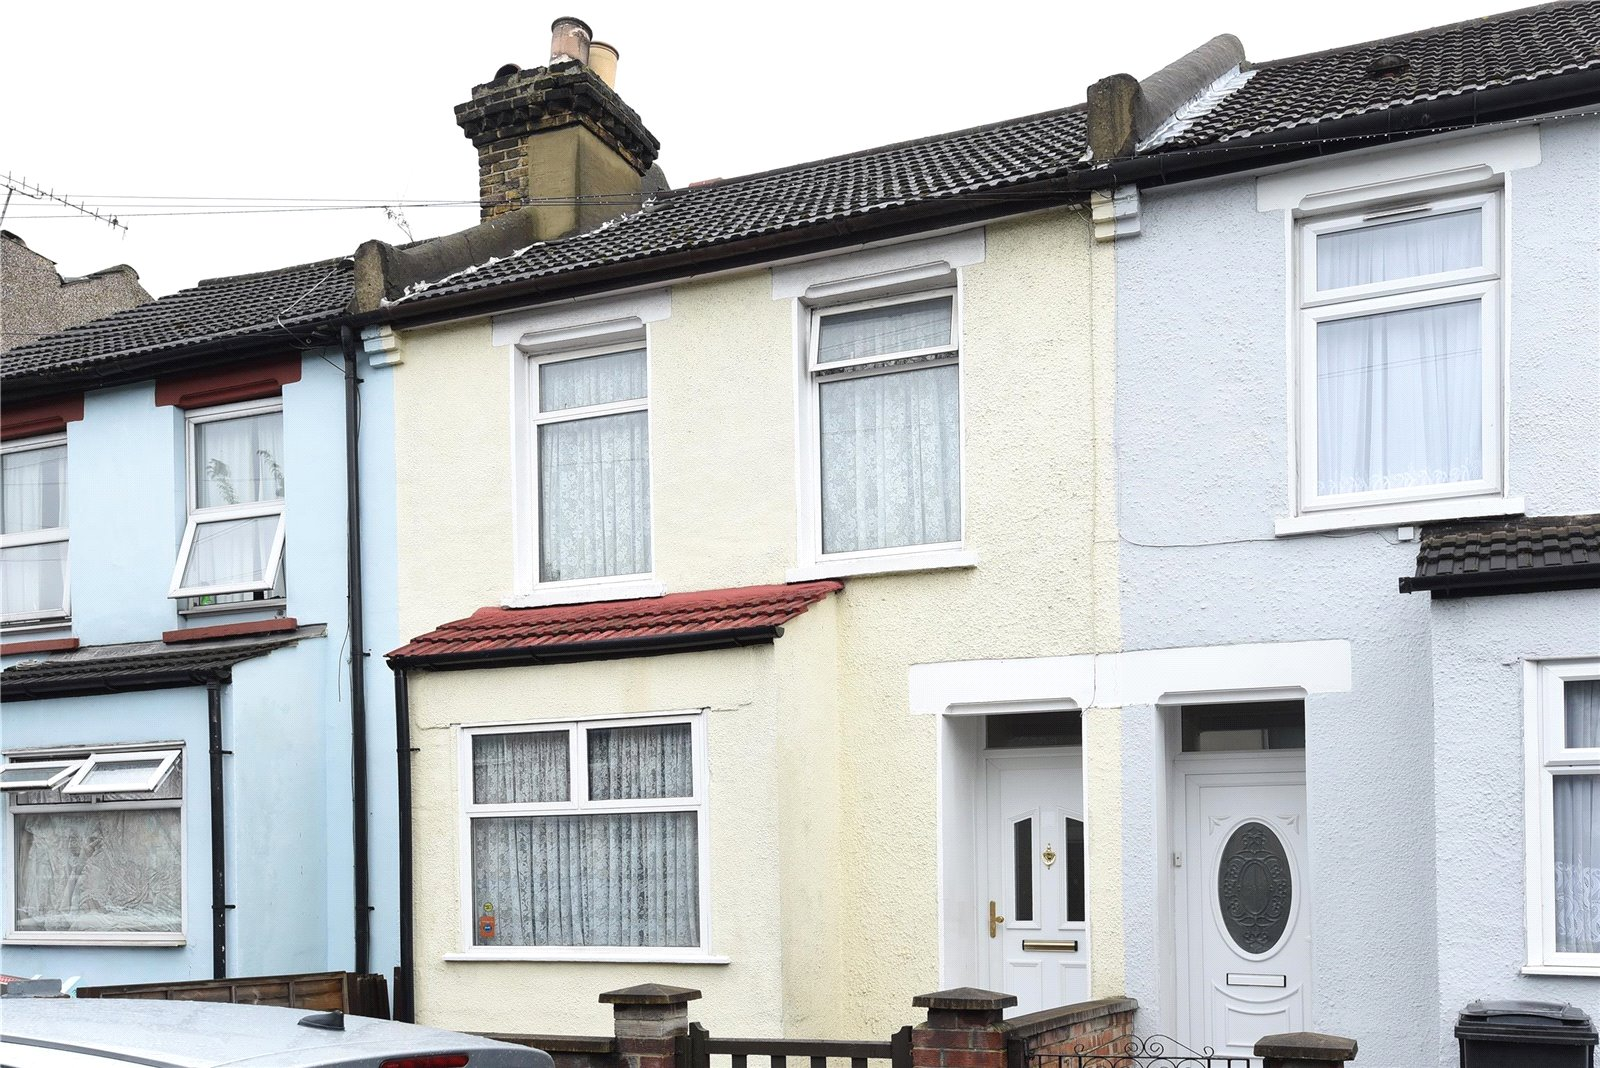 3 bed house for sale in Thornton Heath - Property Image 1